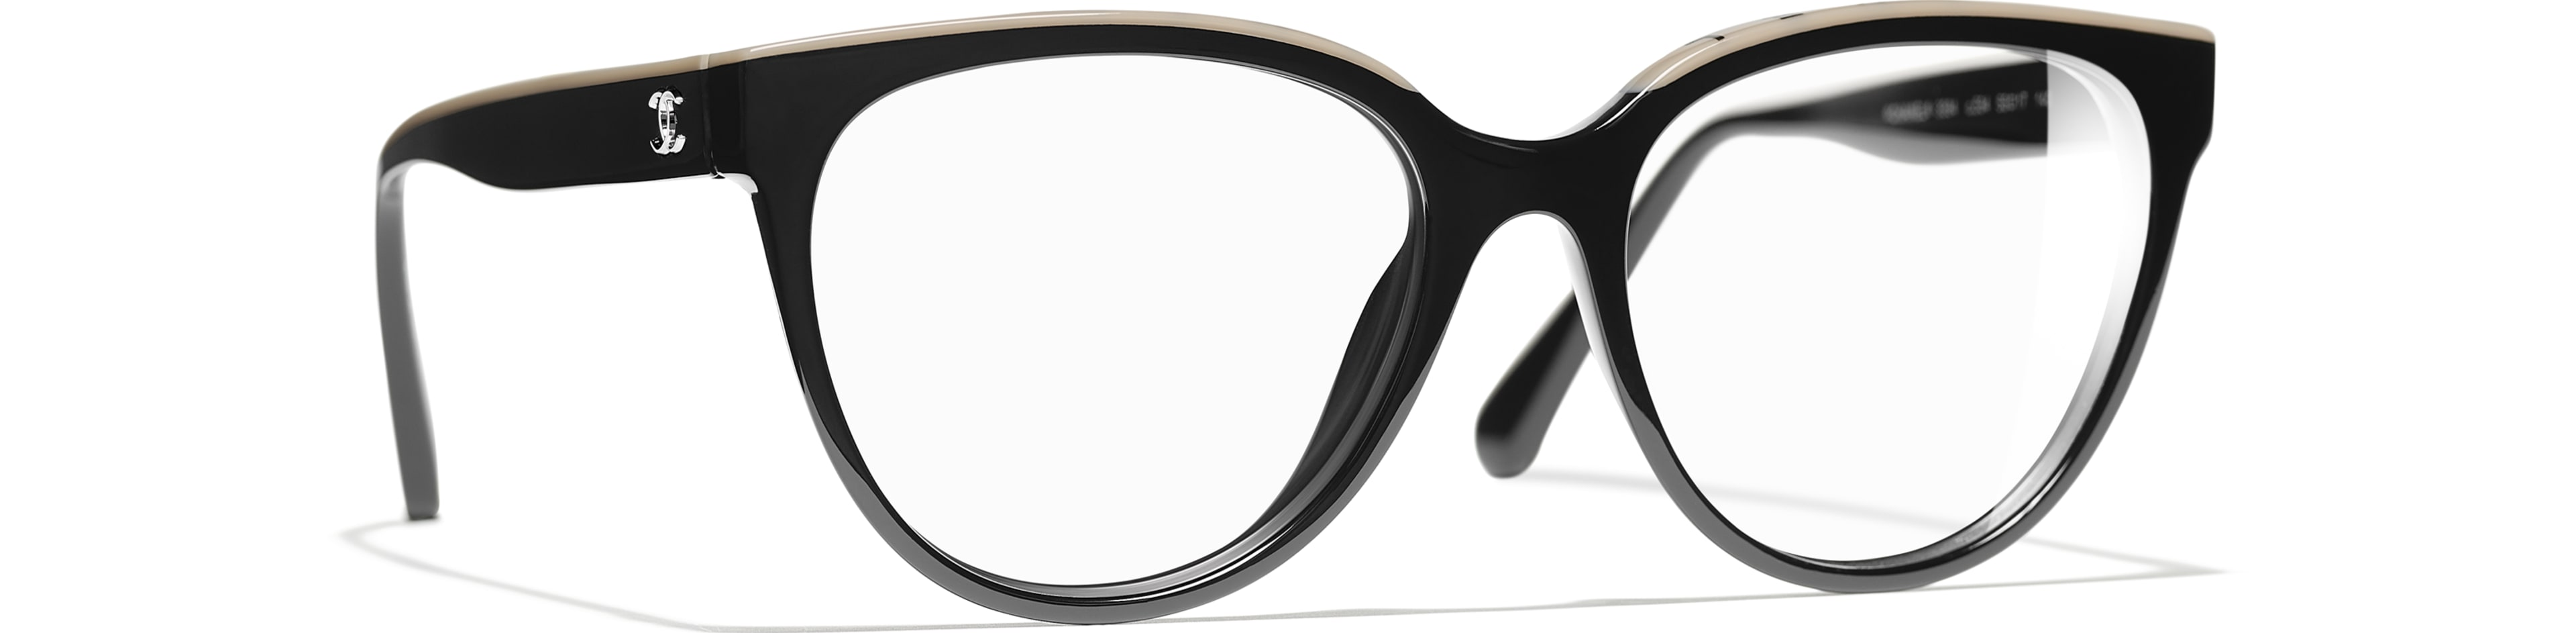 Acetate black & beige frame.